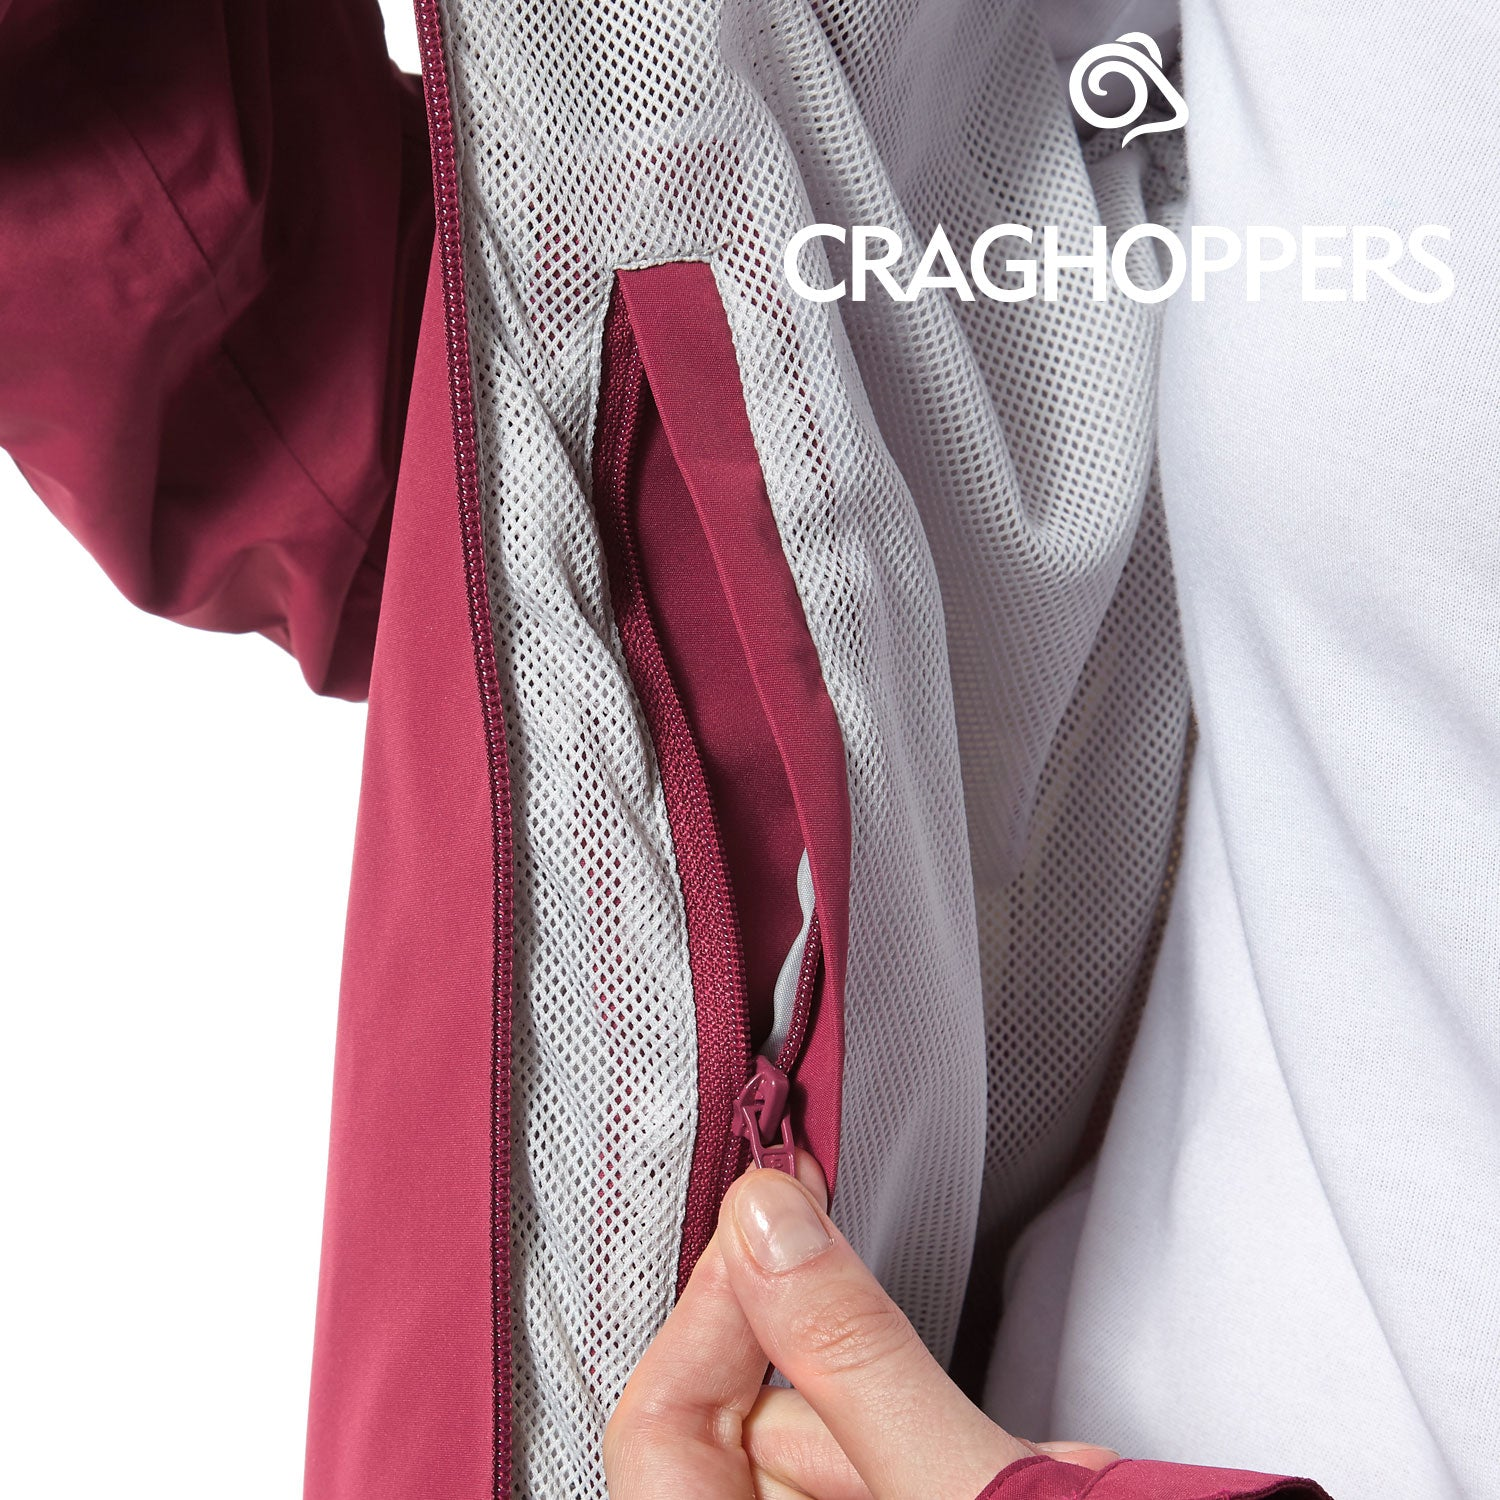 secure internal pocket Craghoppers Horizon Waterproof Jacket | Amalfi Rose